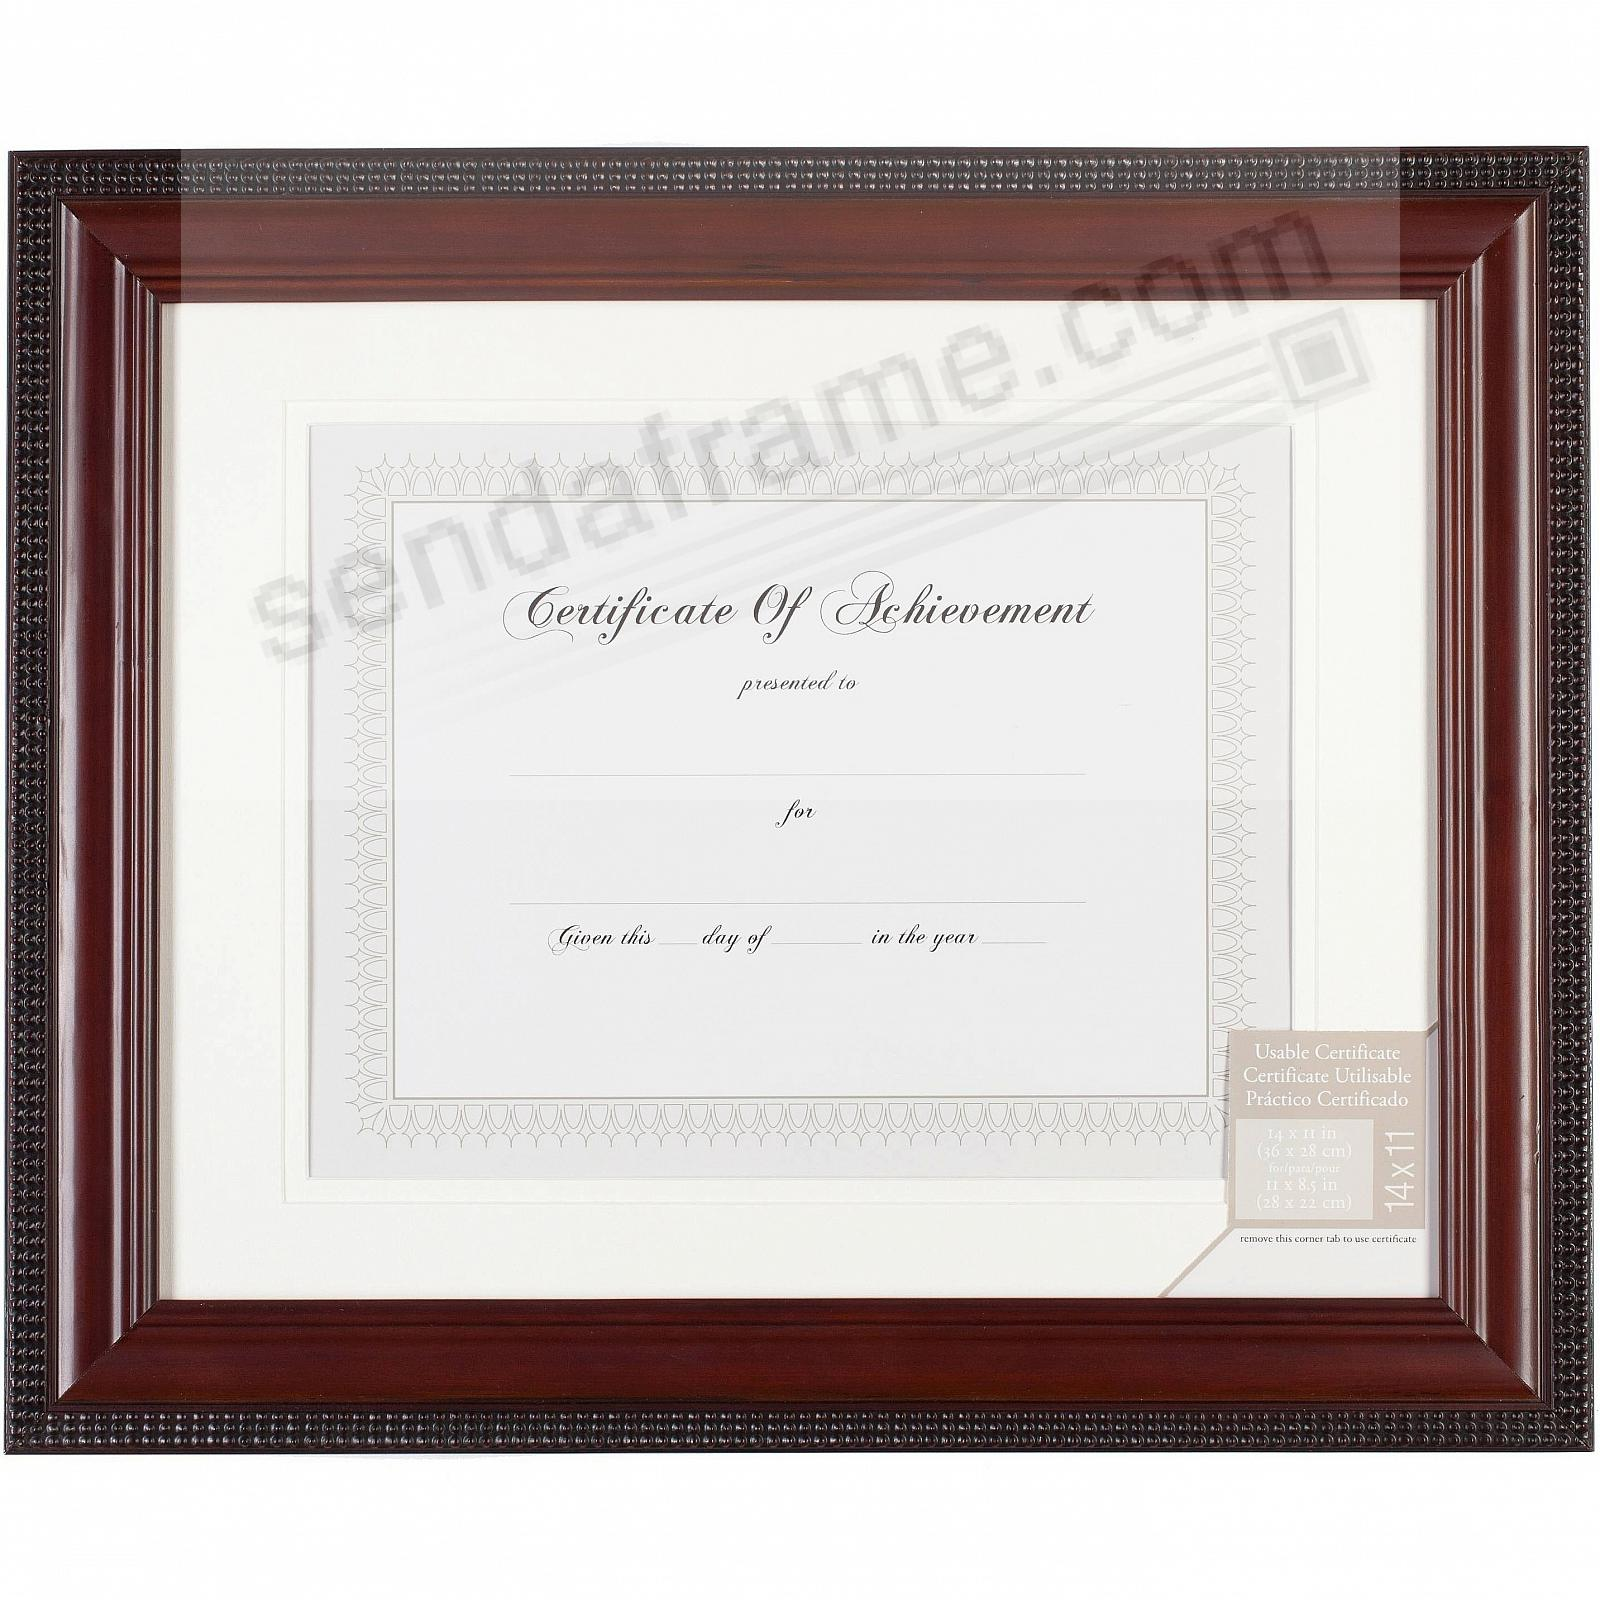 BEAD BORDER Mahogany finish matted 14x11 / 11x8½ certificate frame by Gallery Solutions®